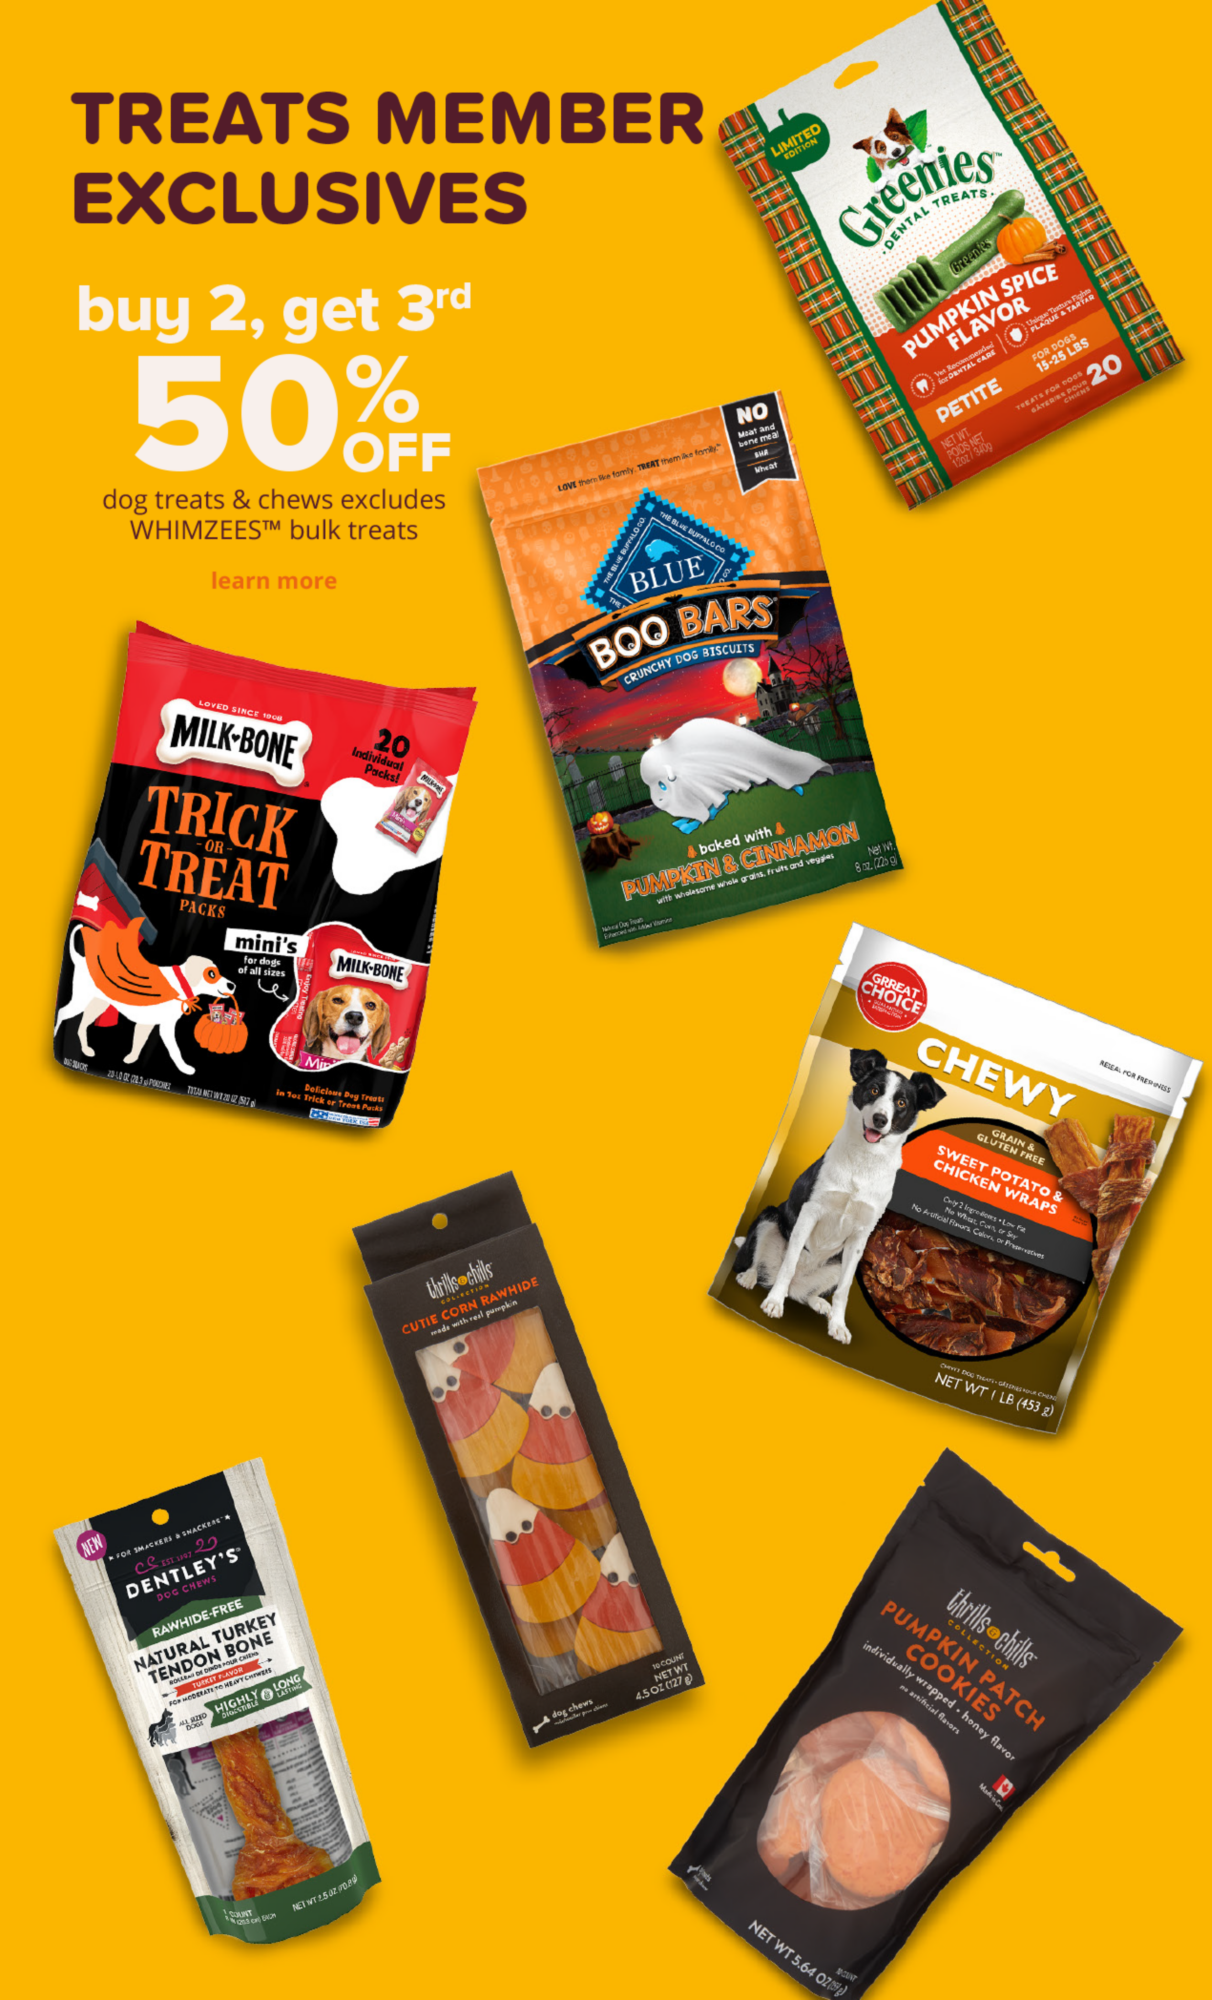 buy 2, get 3rd 50% off dog treats & chews excludes WHIMZEES™ bulk treats